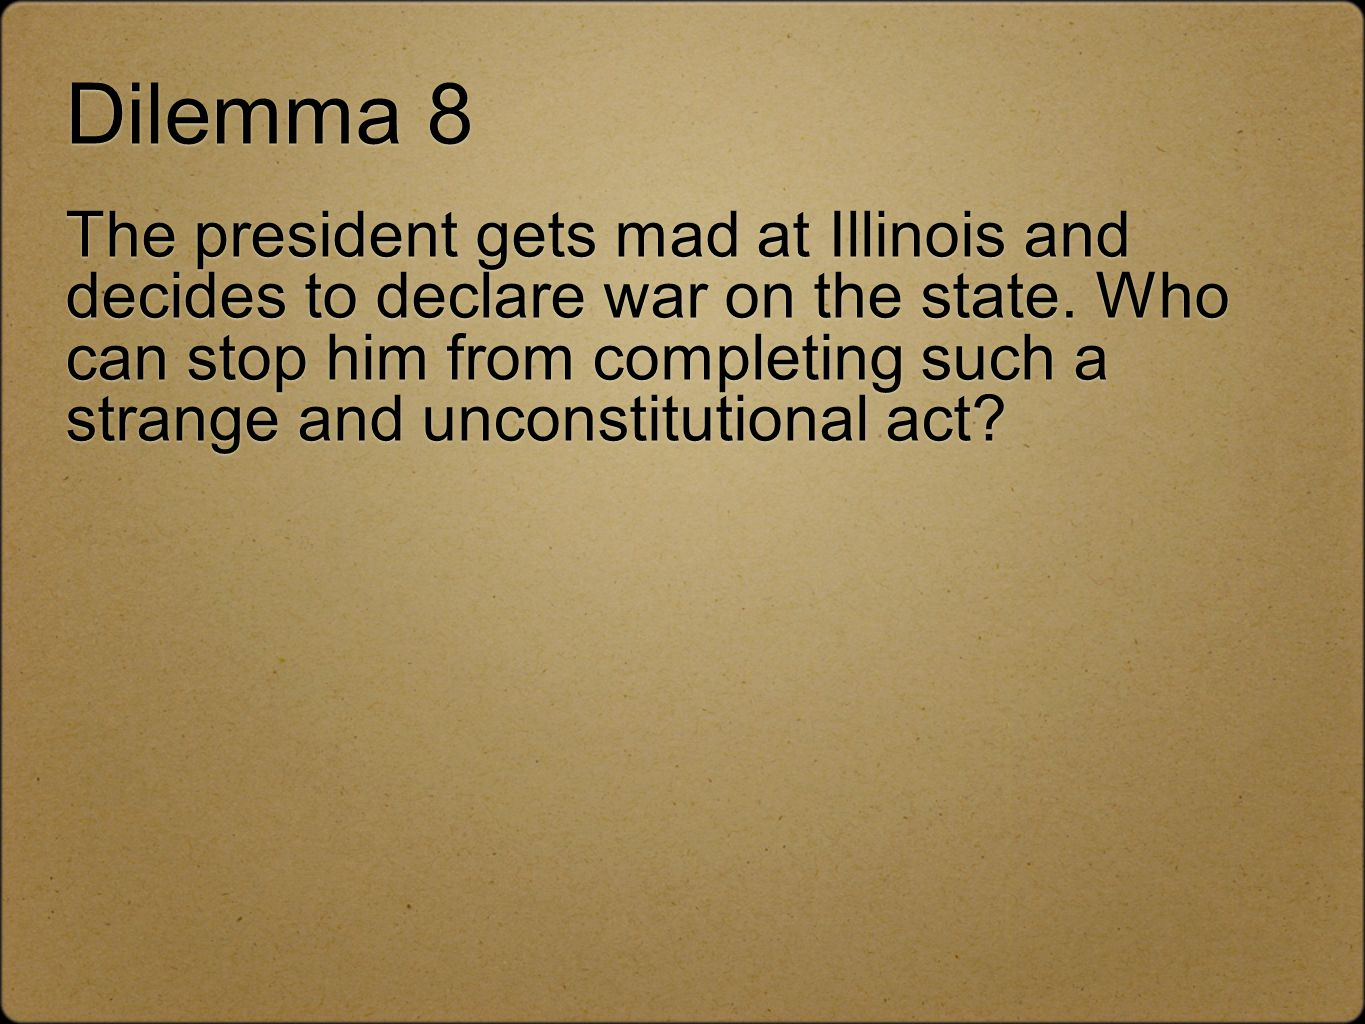 Dilemma 8 The president gets mad at Illinois and decides to declare war on the state.